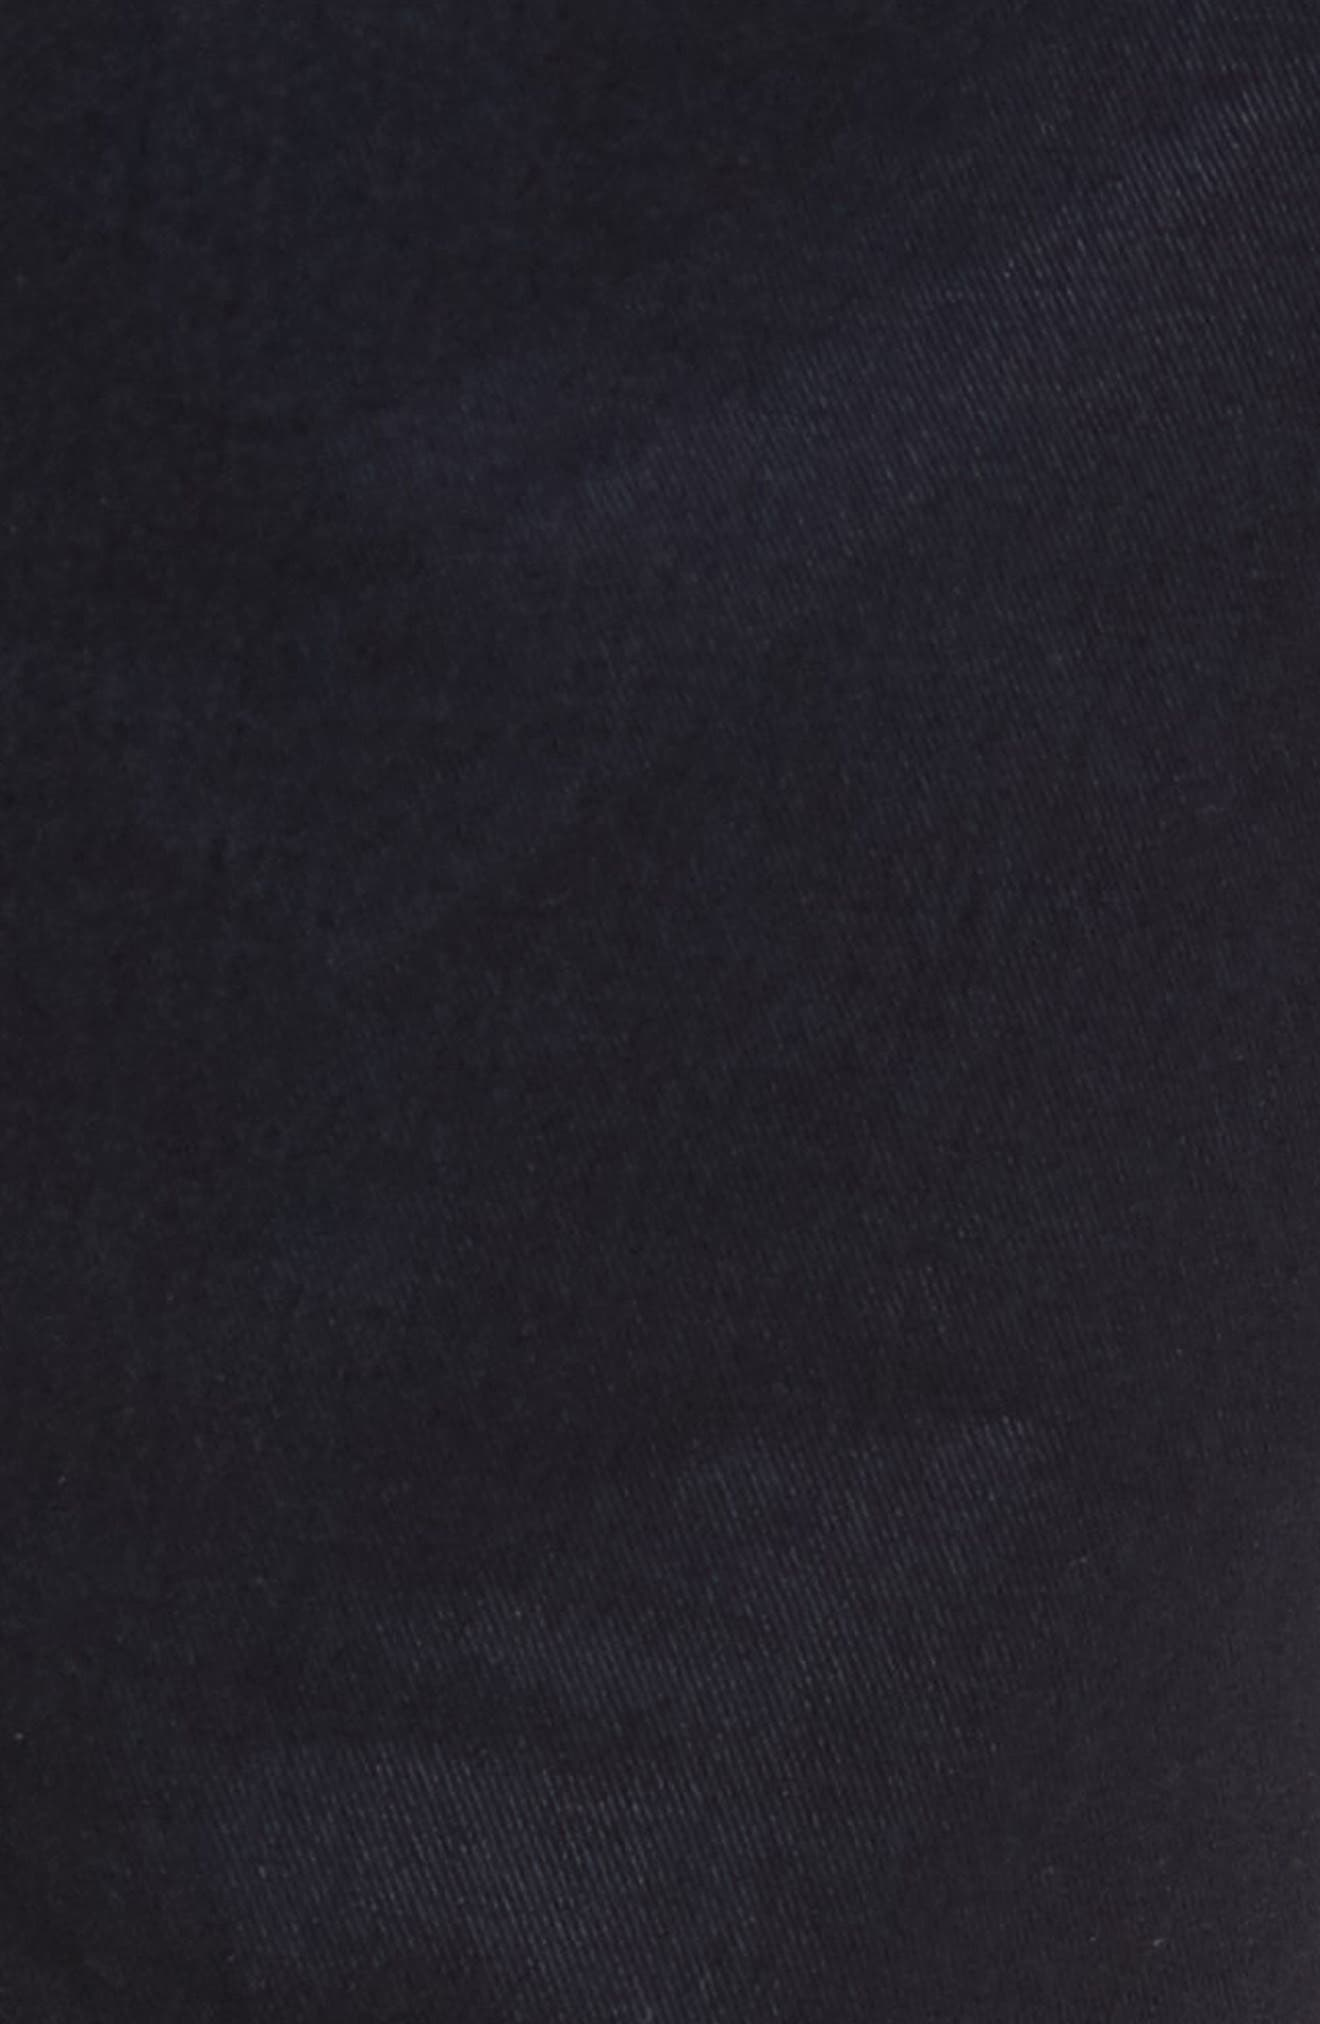 Stanino-W Flat Front Stretch Cotton Trousers,                             Alternate thumbnail 5, color,                             Navy